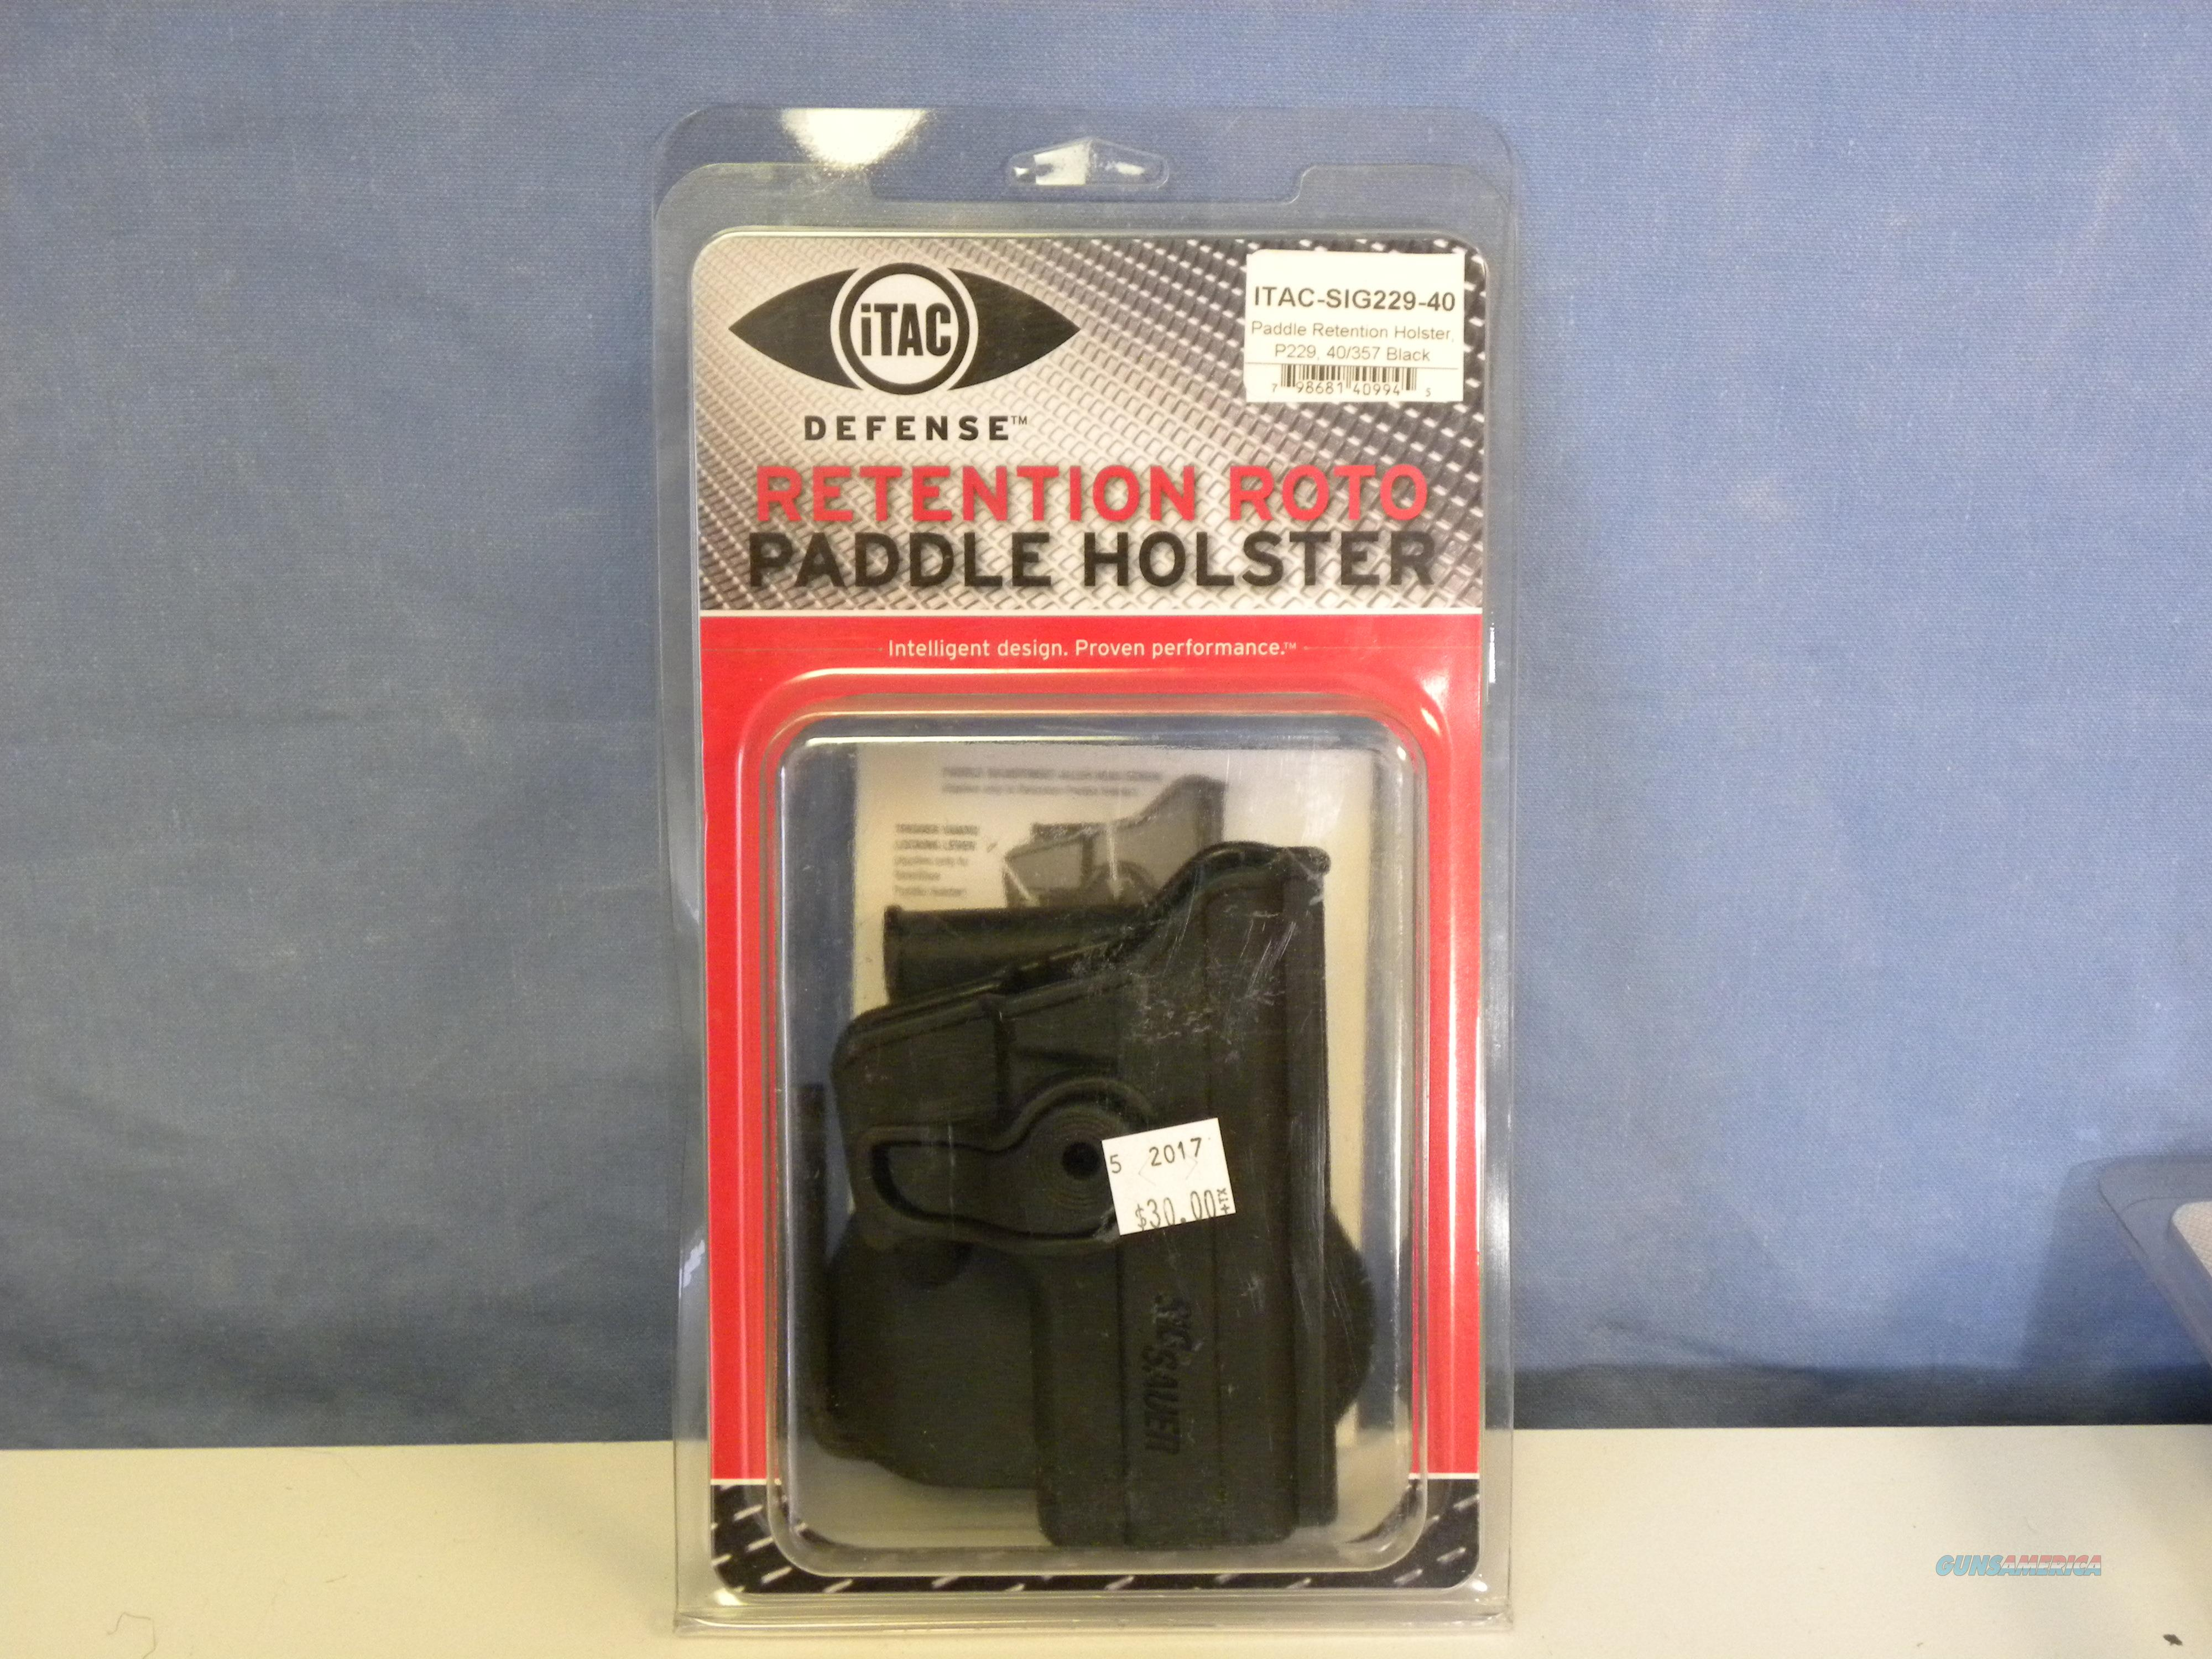 iTAC Sig Sauer 229 .40 Retention Roto Paddle Holster  Non-Guns > Holsters and Gunleather > Large Frame Auto